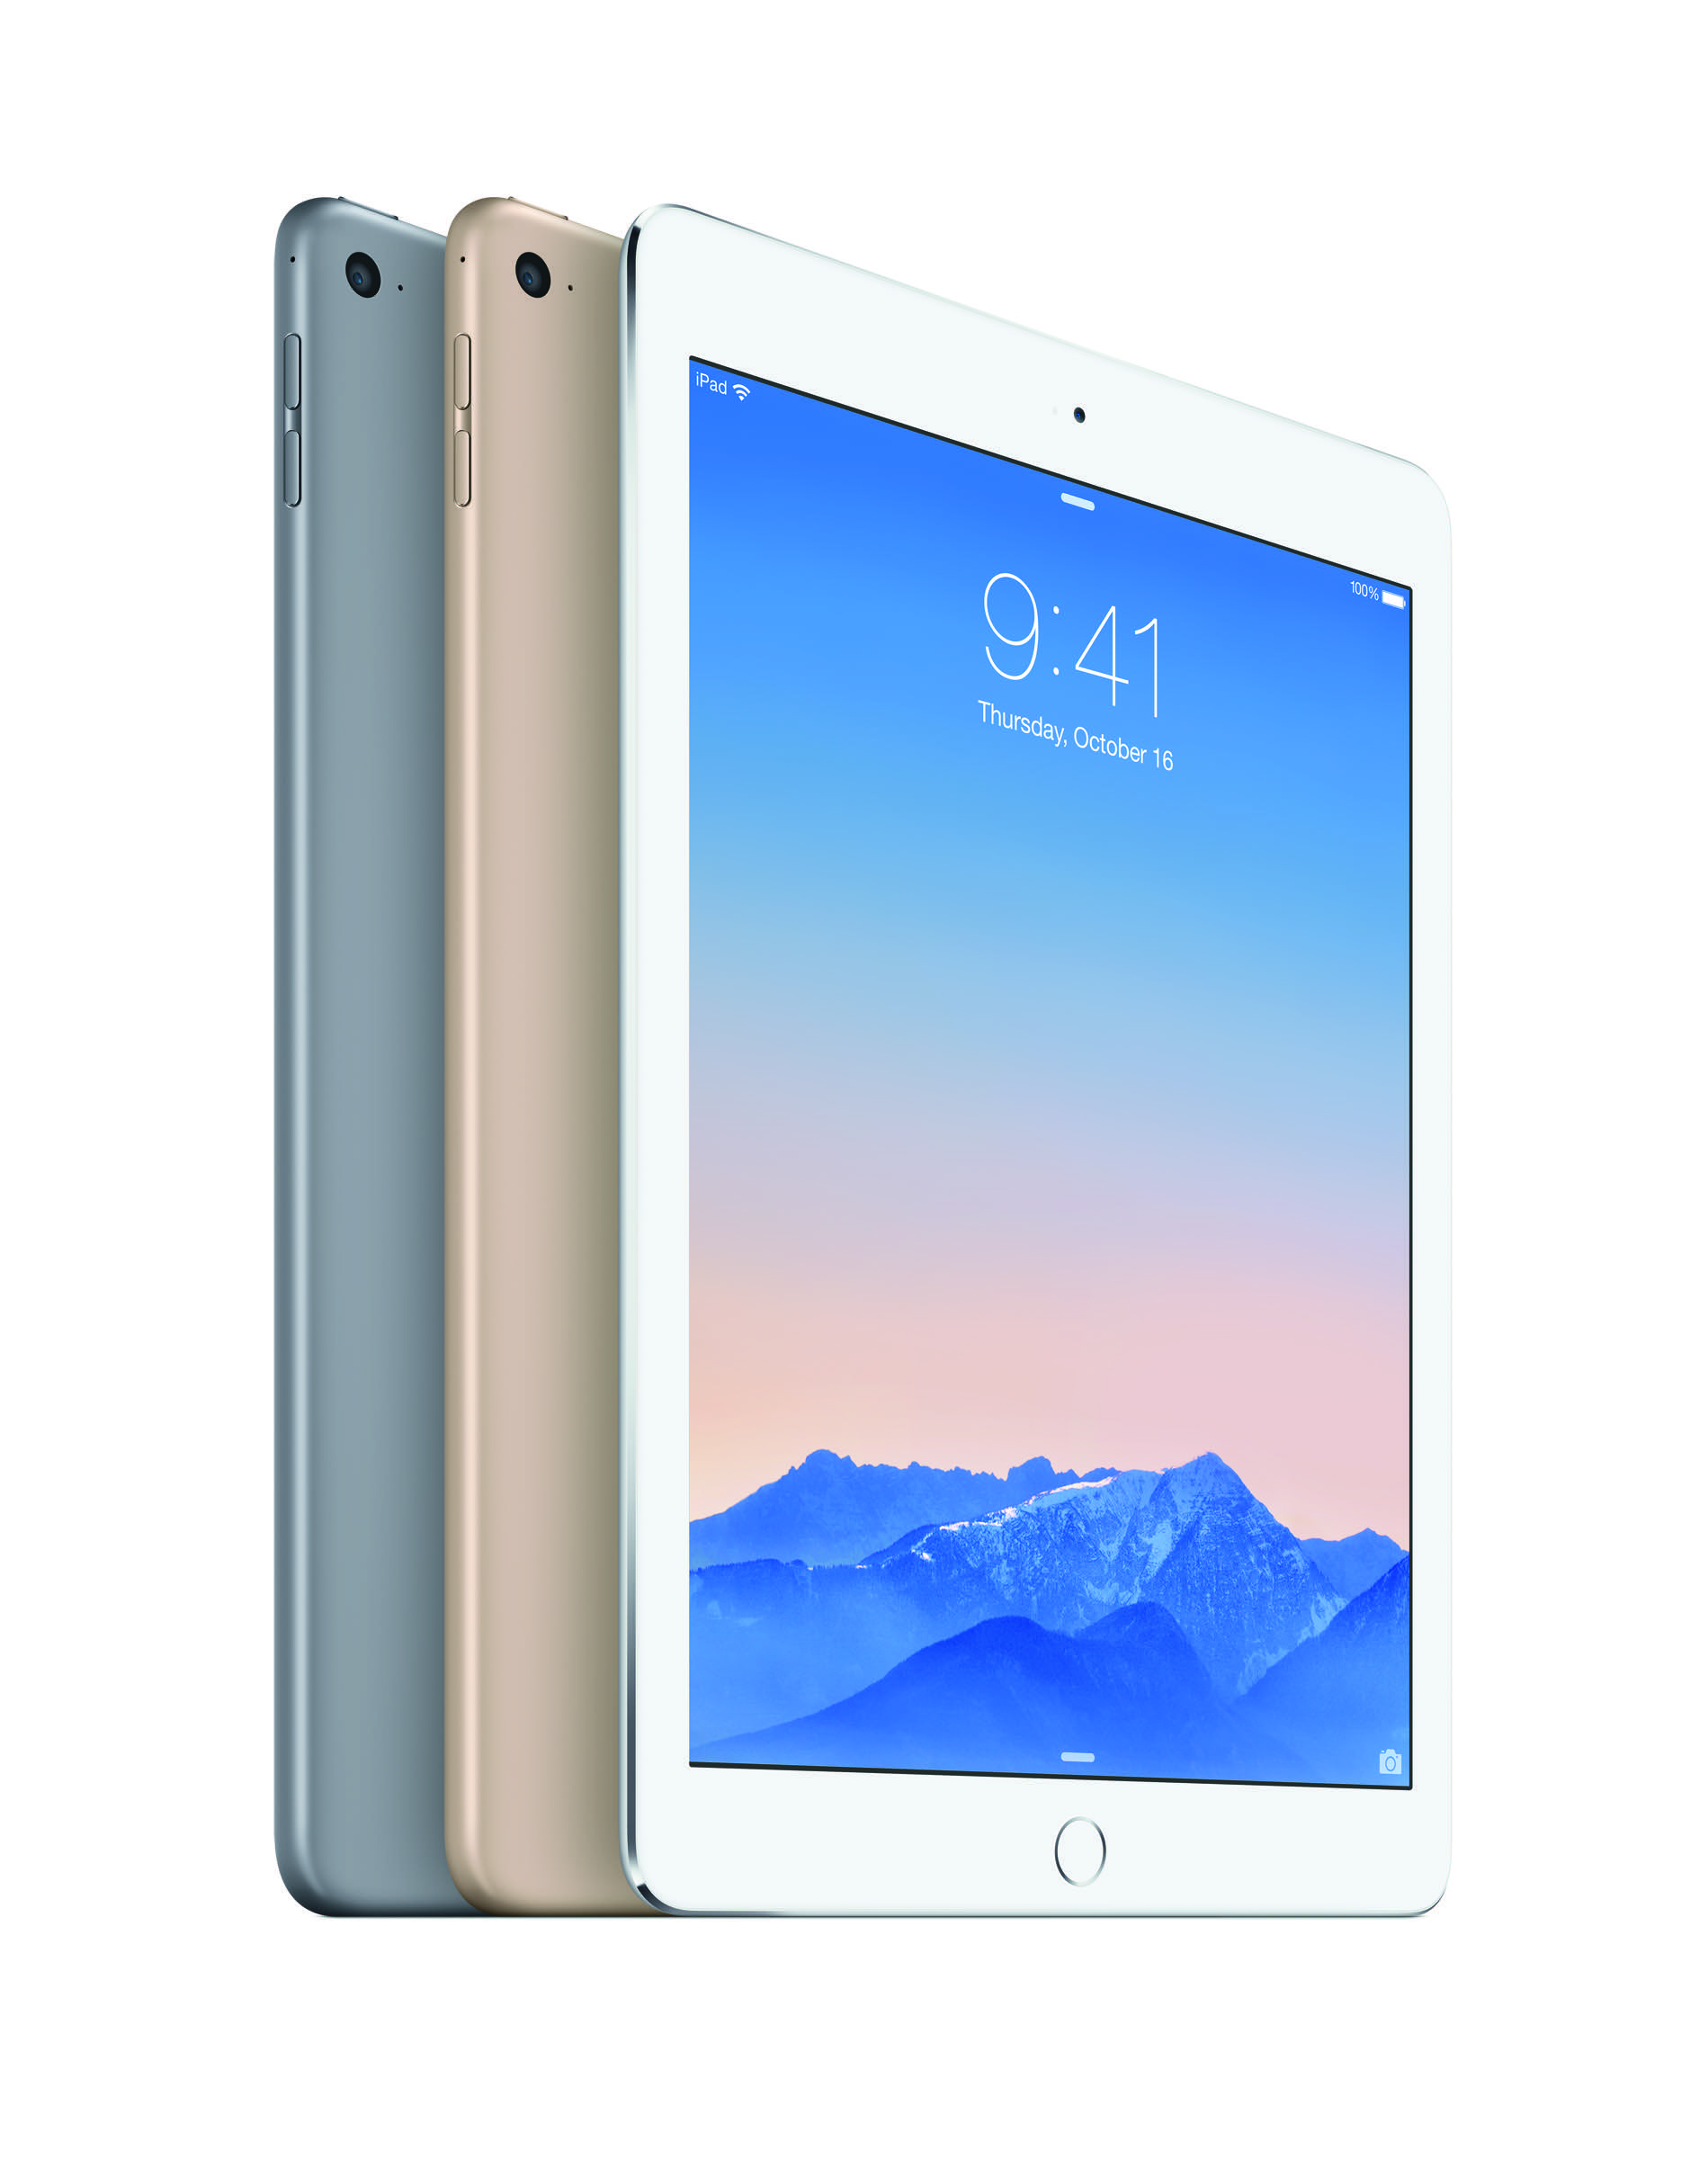 Apple's iPad continues to lead as worldwide tablet sales fall